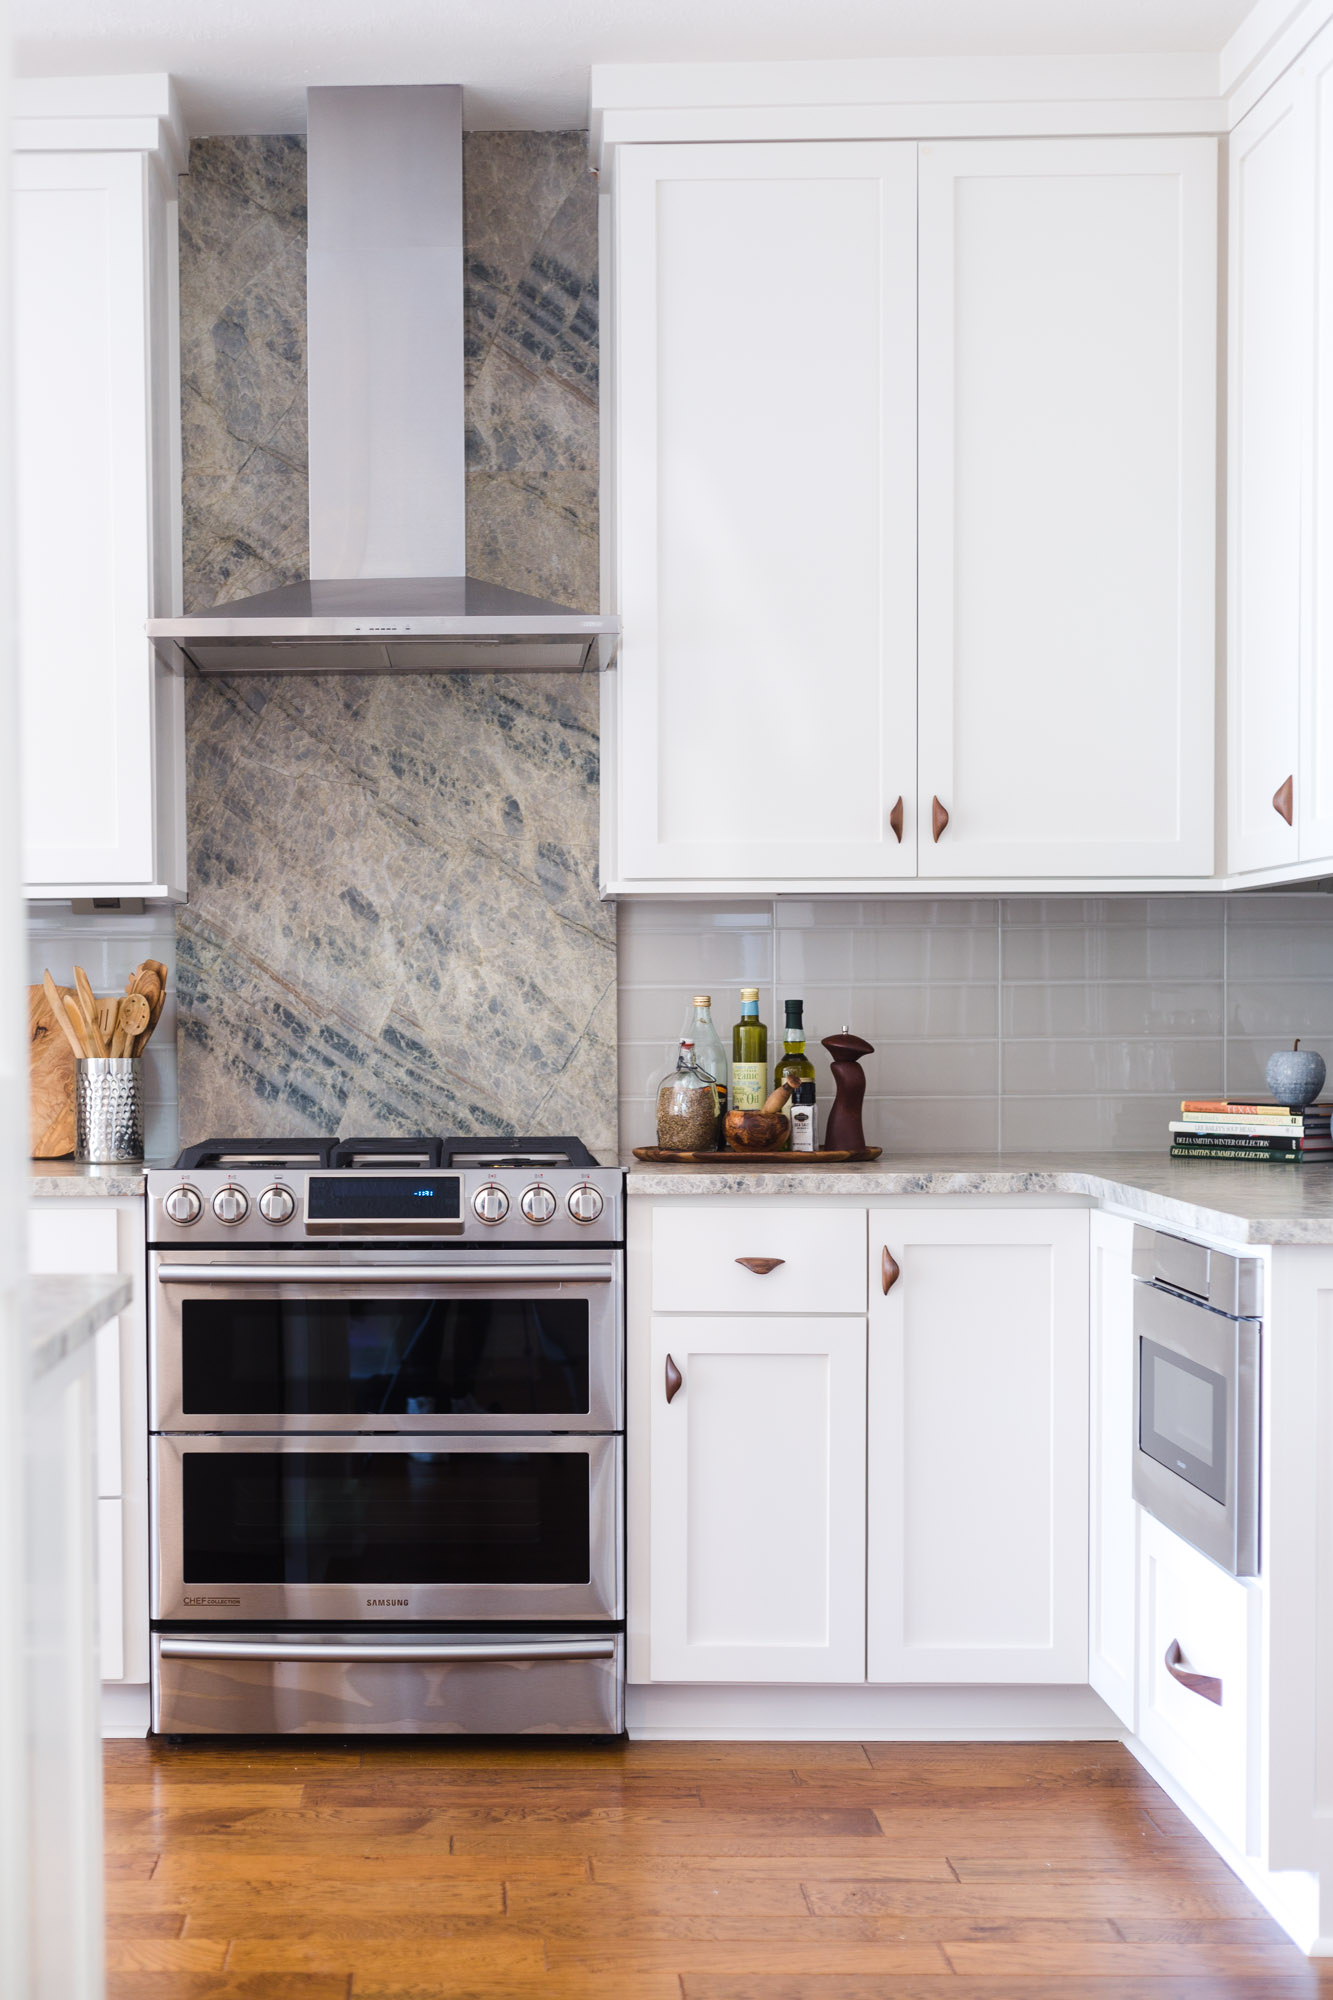 Simple white kitchen remodel with quartzite countertops, wood floors, and wood cabinet pulls | Carla Aston, Designer | Tori Aston, Photographer #whitekitchen #midcenturystyle #quartzitecountertops #kitchenremodel #kitchenremodelideas #venthood #drawermicrowave